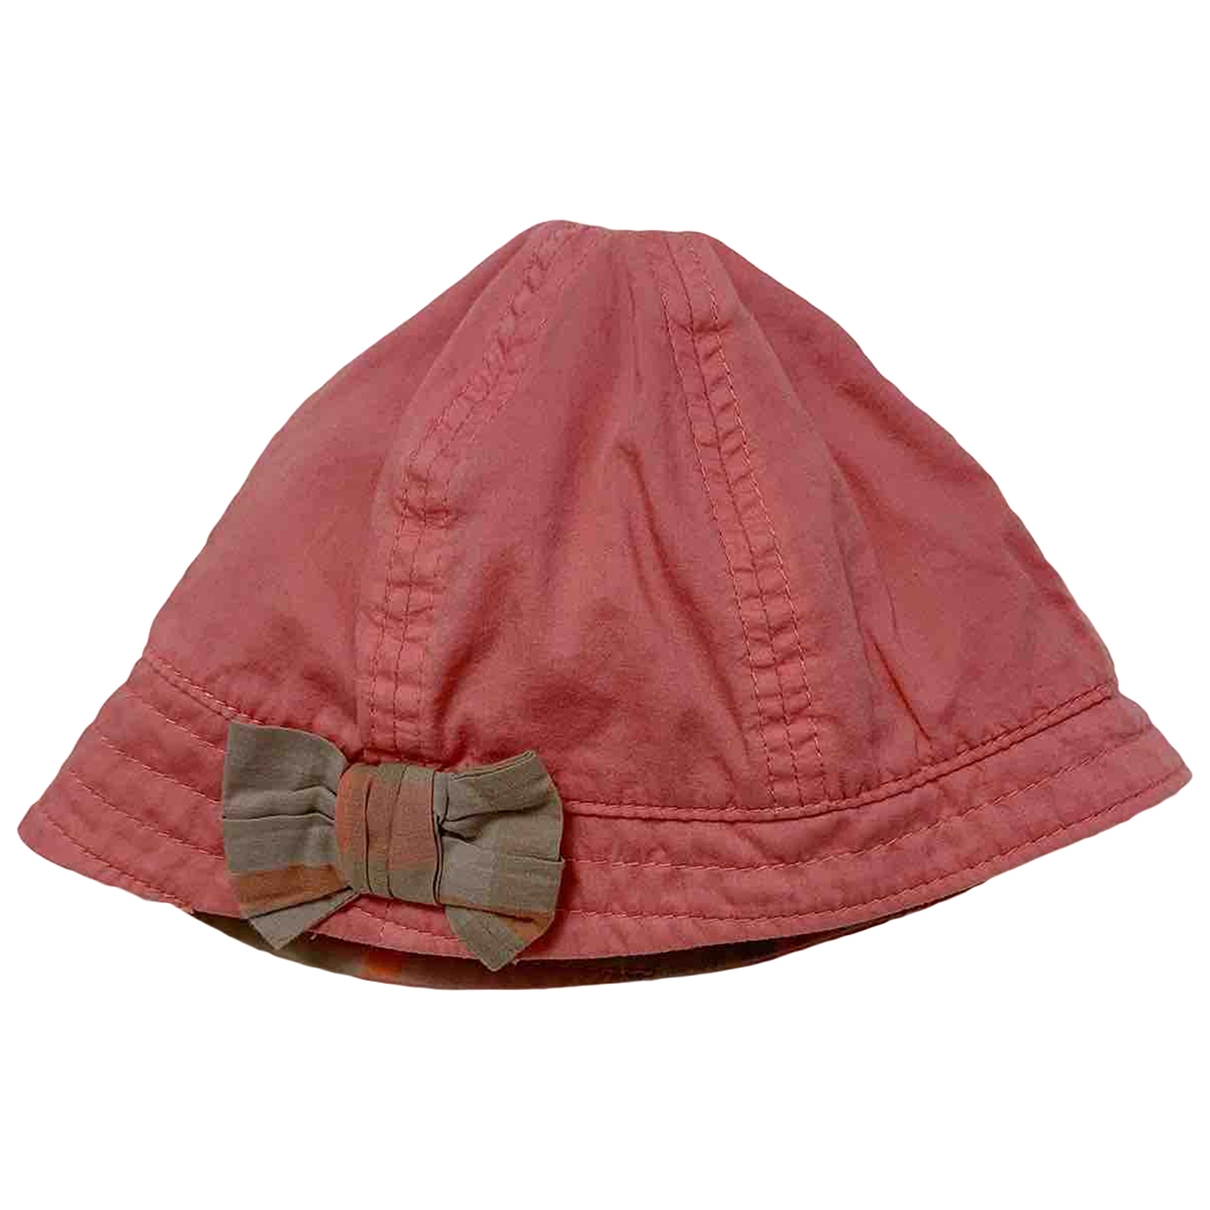 Burberry \N Pink Cotton hat & Gloves for Kids \N